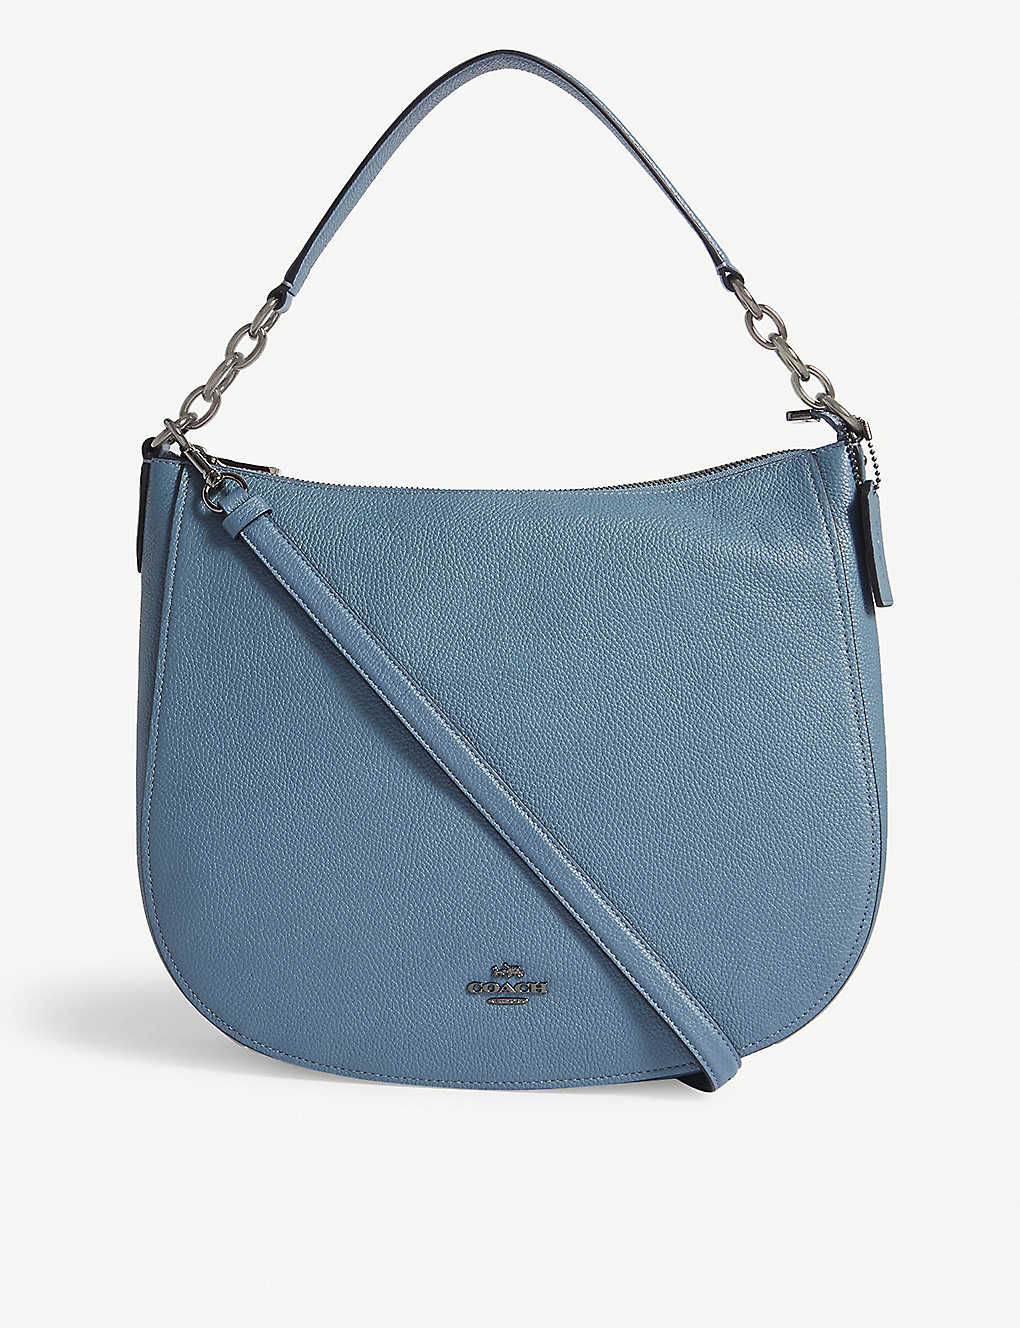 423e436c4 COACH - Chelsea leather hobo 32 bag | Selfridges.com